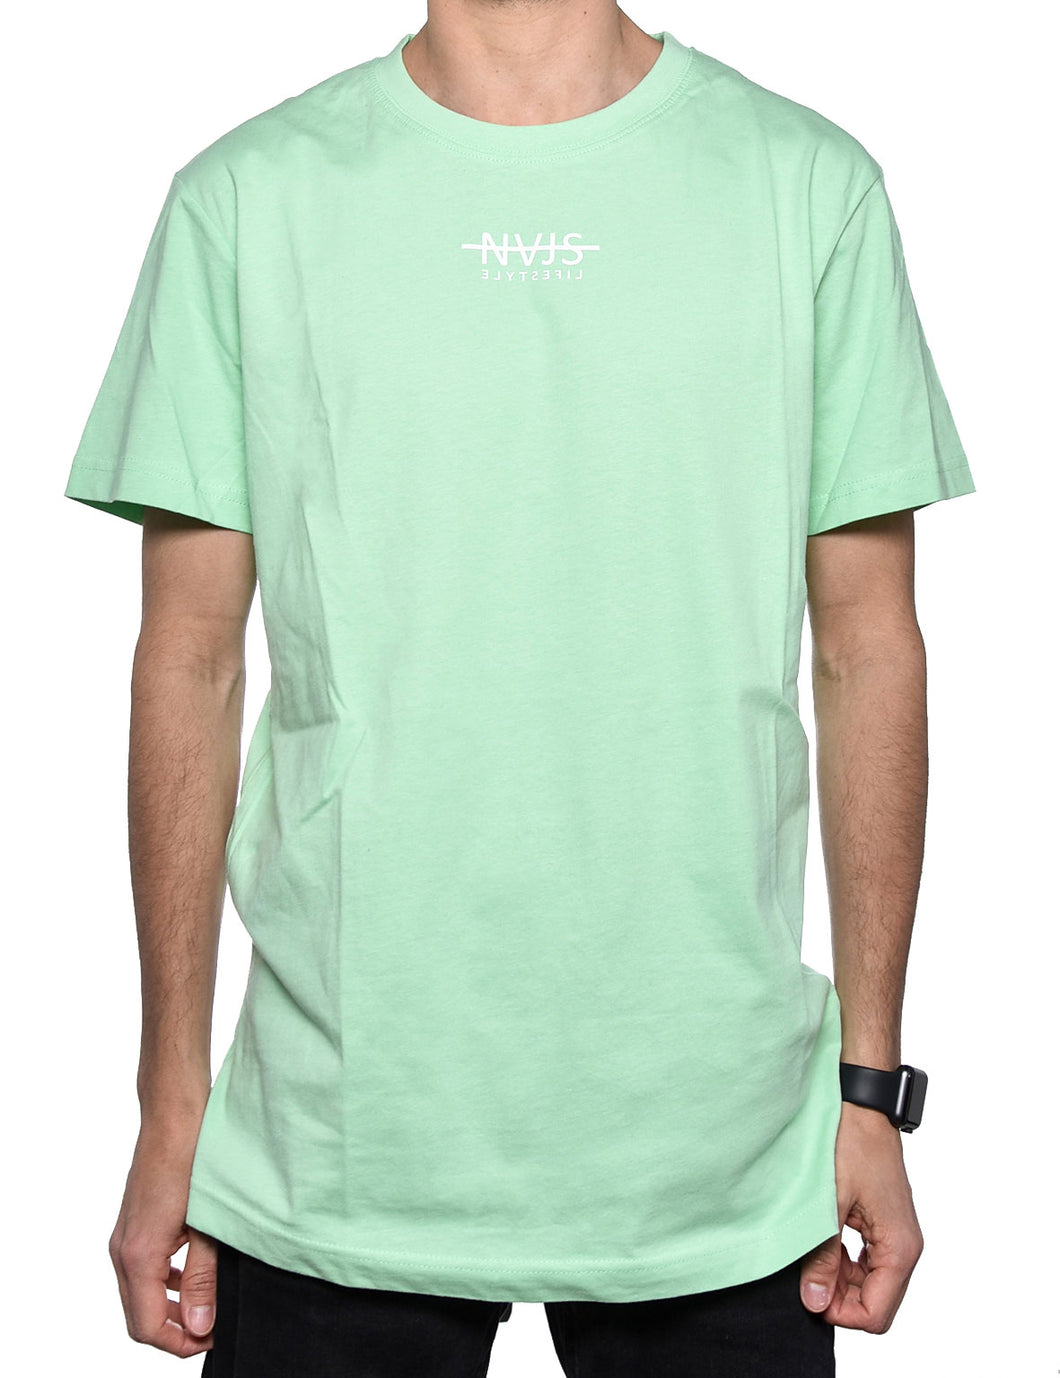 NAJS T-SHIRT (MINT GREEN)